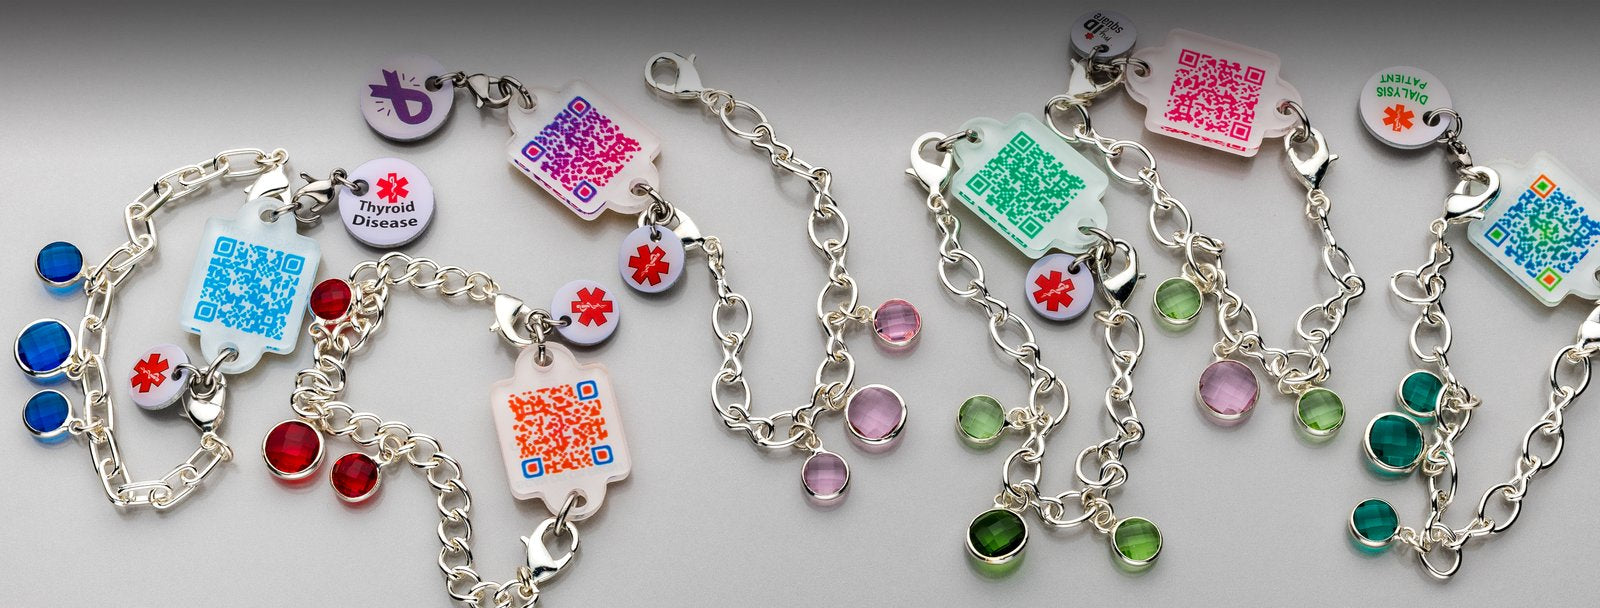 Colorful, interchangeable bracelet and necklace charms connect to your online medical information when the bar code is scanned or the URL on the back is accessed.